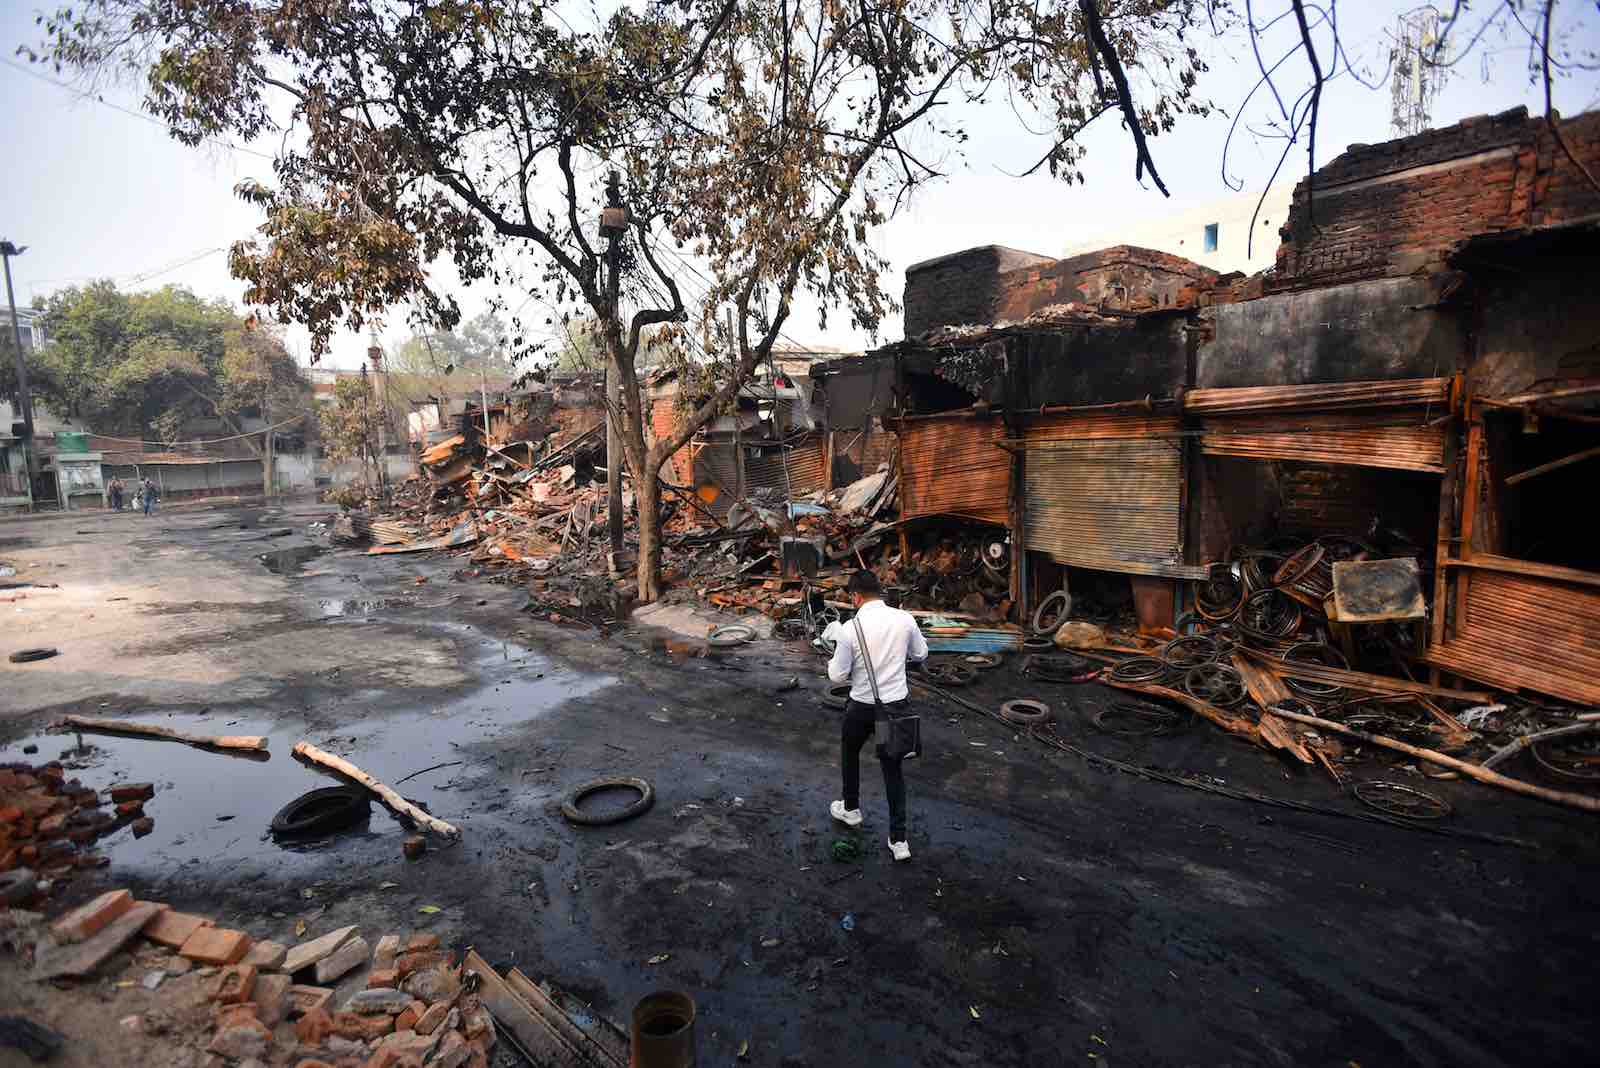 A man walks past shops burnt during sectarian riots in New Delhi, 26 February (Amal KS/Hindustan Times via Getty Images)